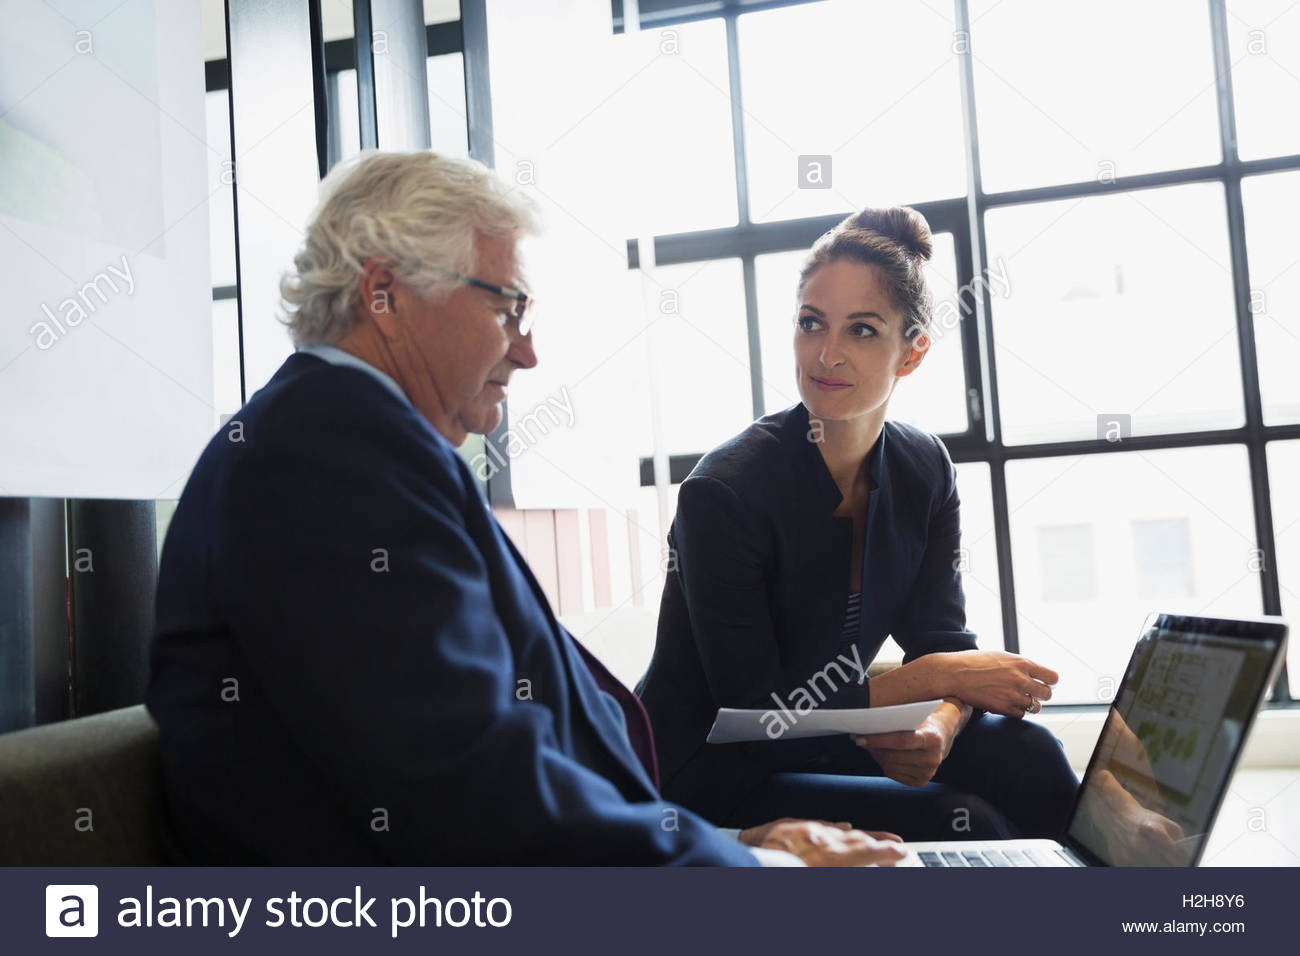 Business people with paperwork working at laptop in office - Stock Image